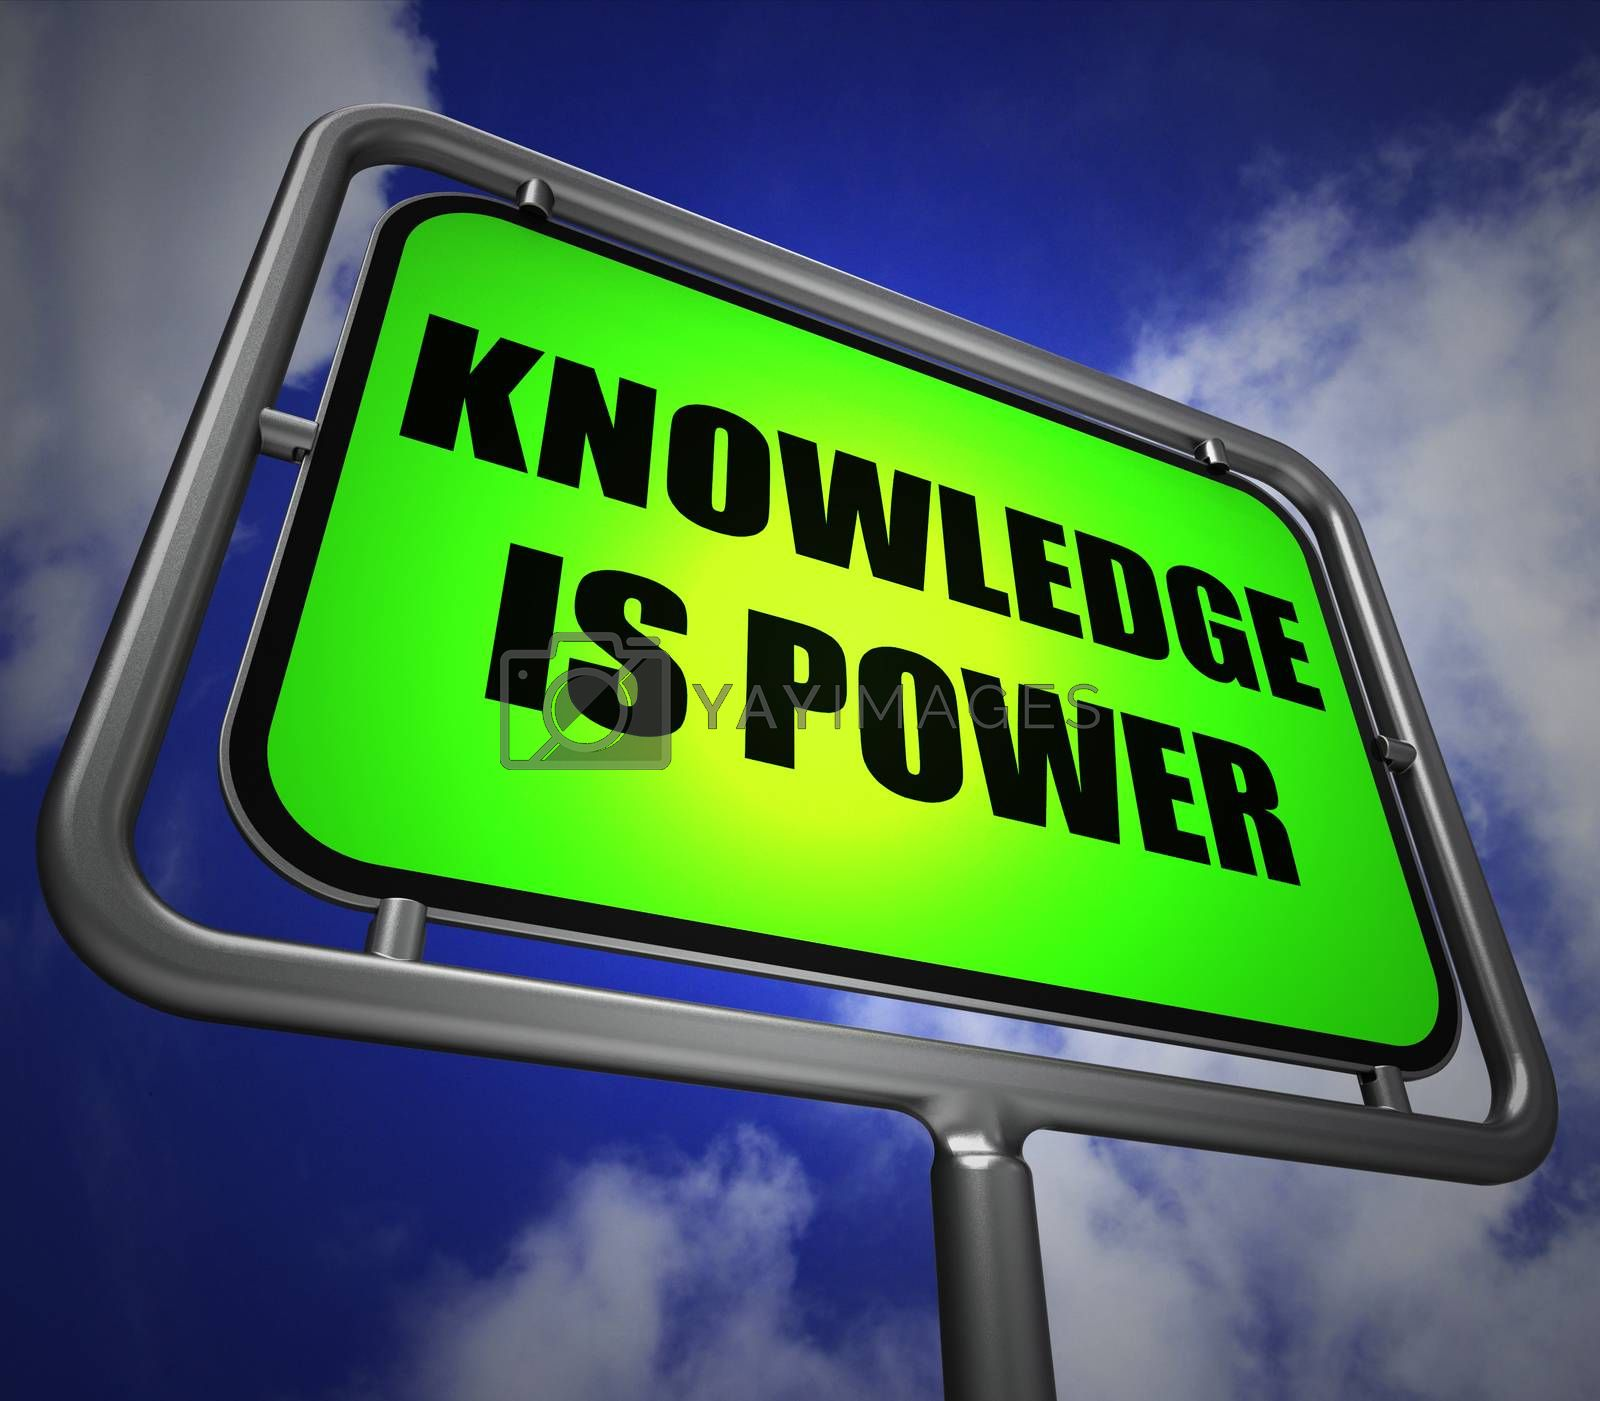 Knowledge is Power Signpost Represents Education and Development by stuartmiles